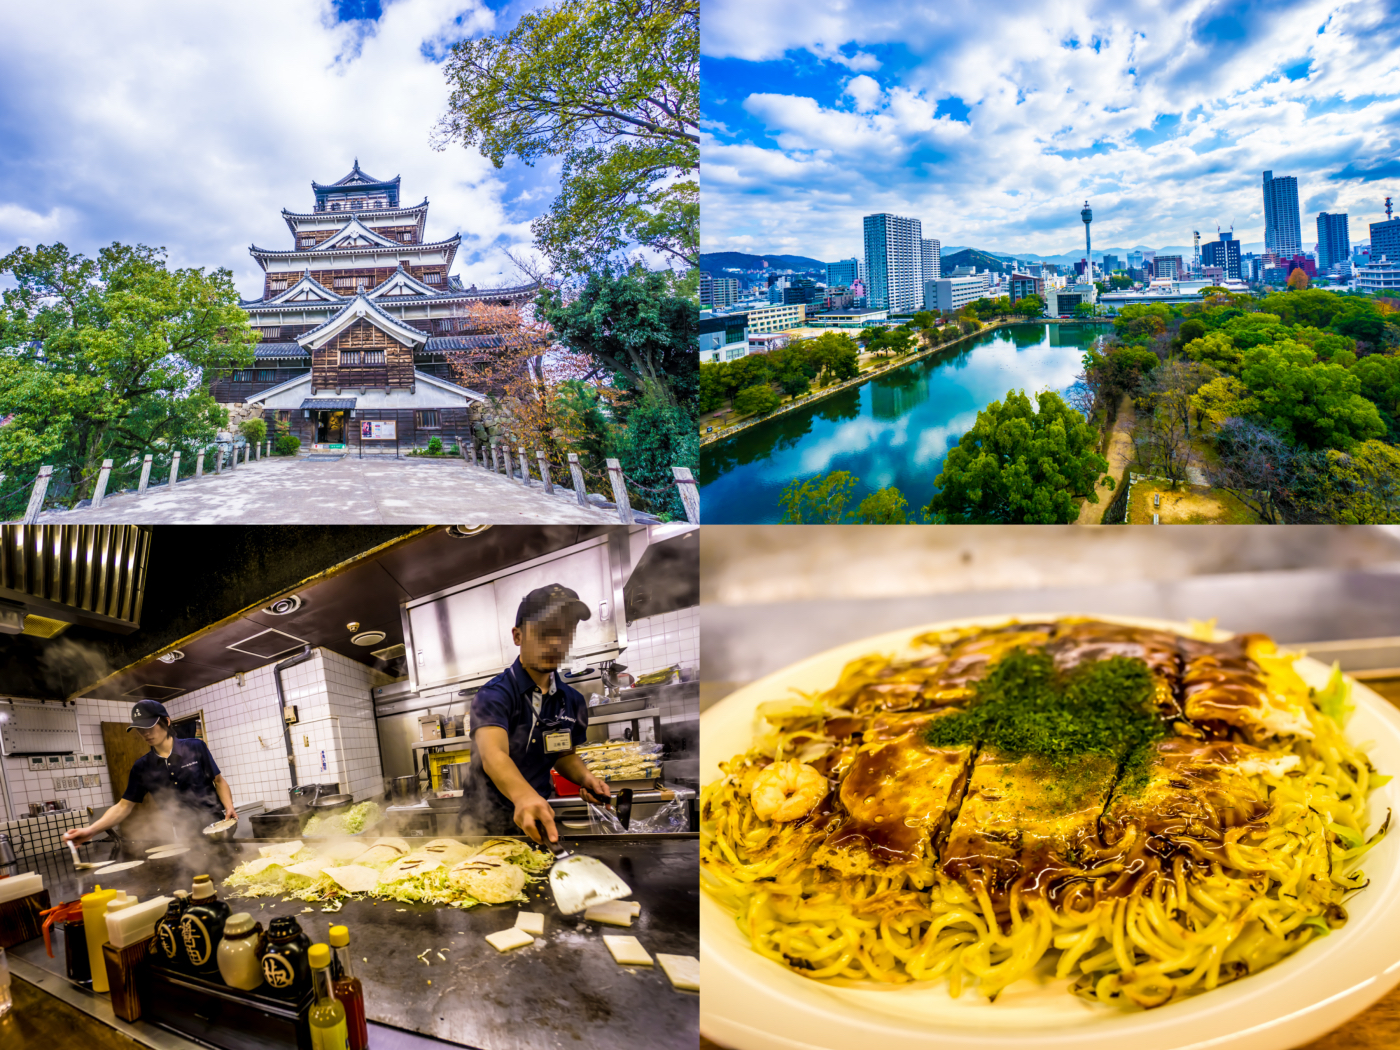 hiroshima castle okonomiyaki featured image